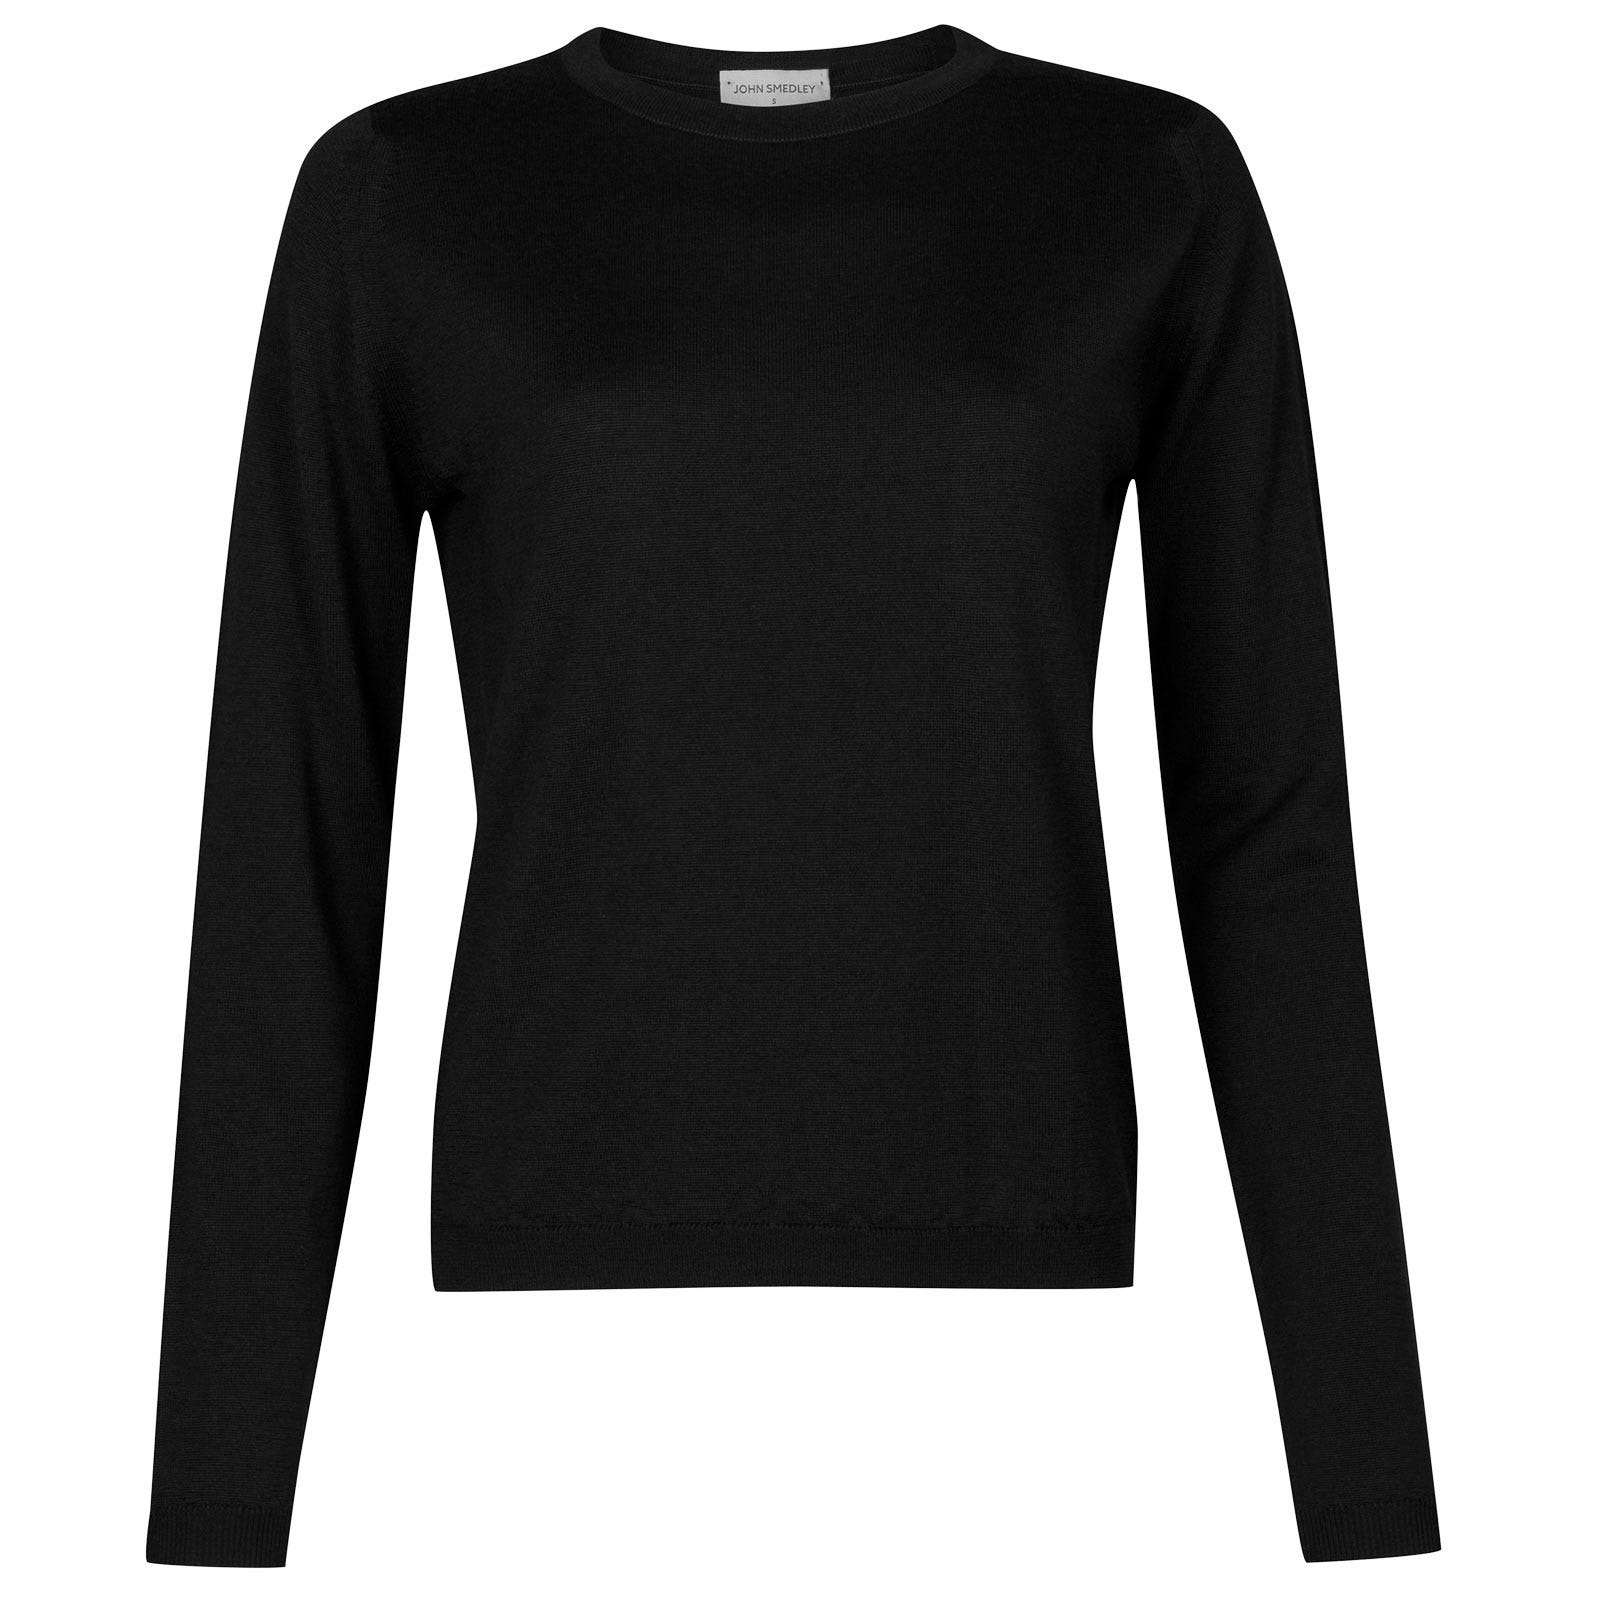 John Smedley Edmee Merino Wool Sweater in Black-M